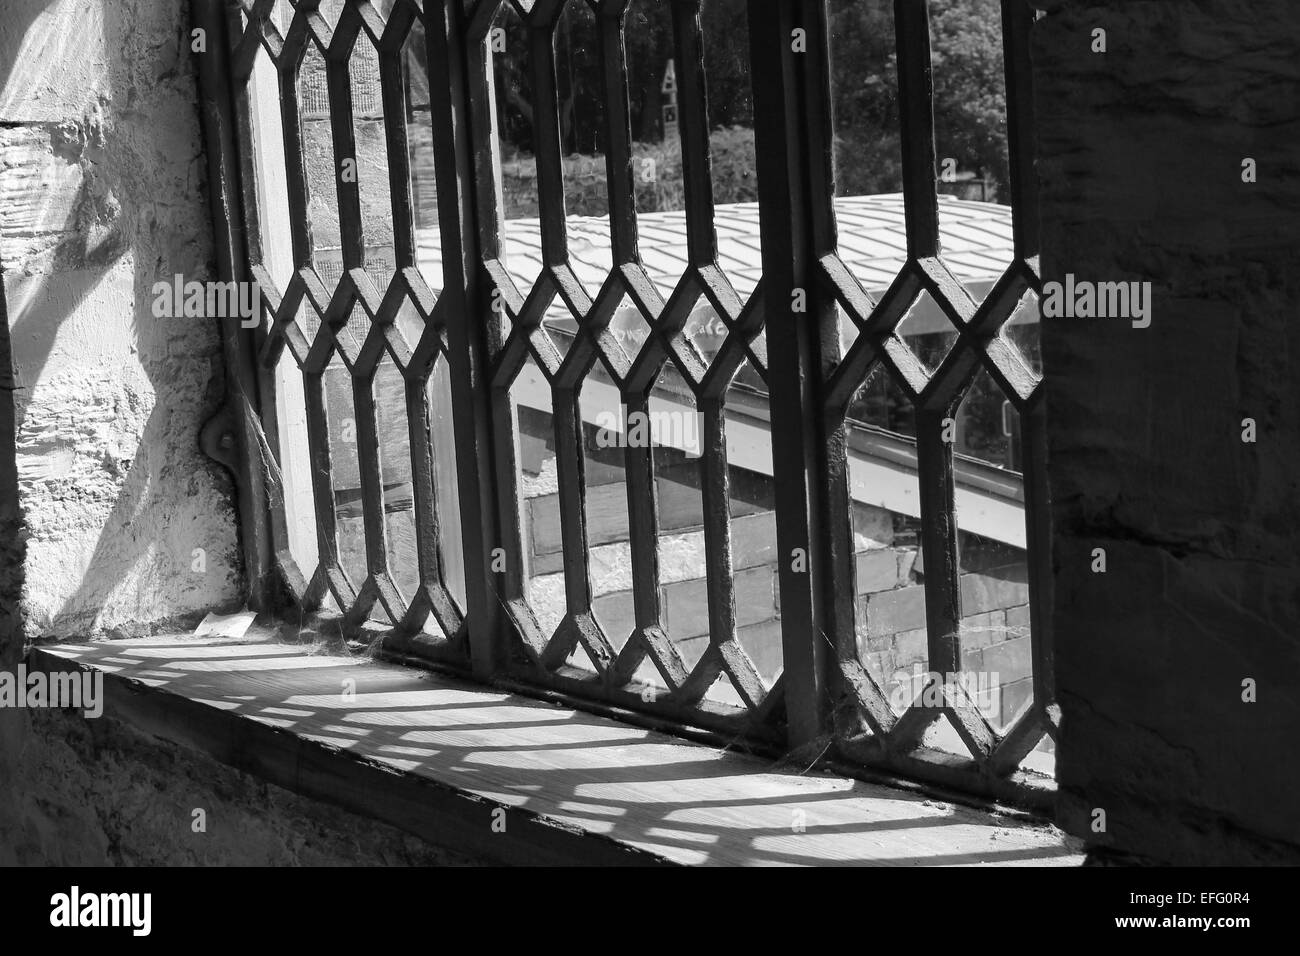 Reflection victorian windows museum castle old white black street photography lines shapes abstract art